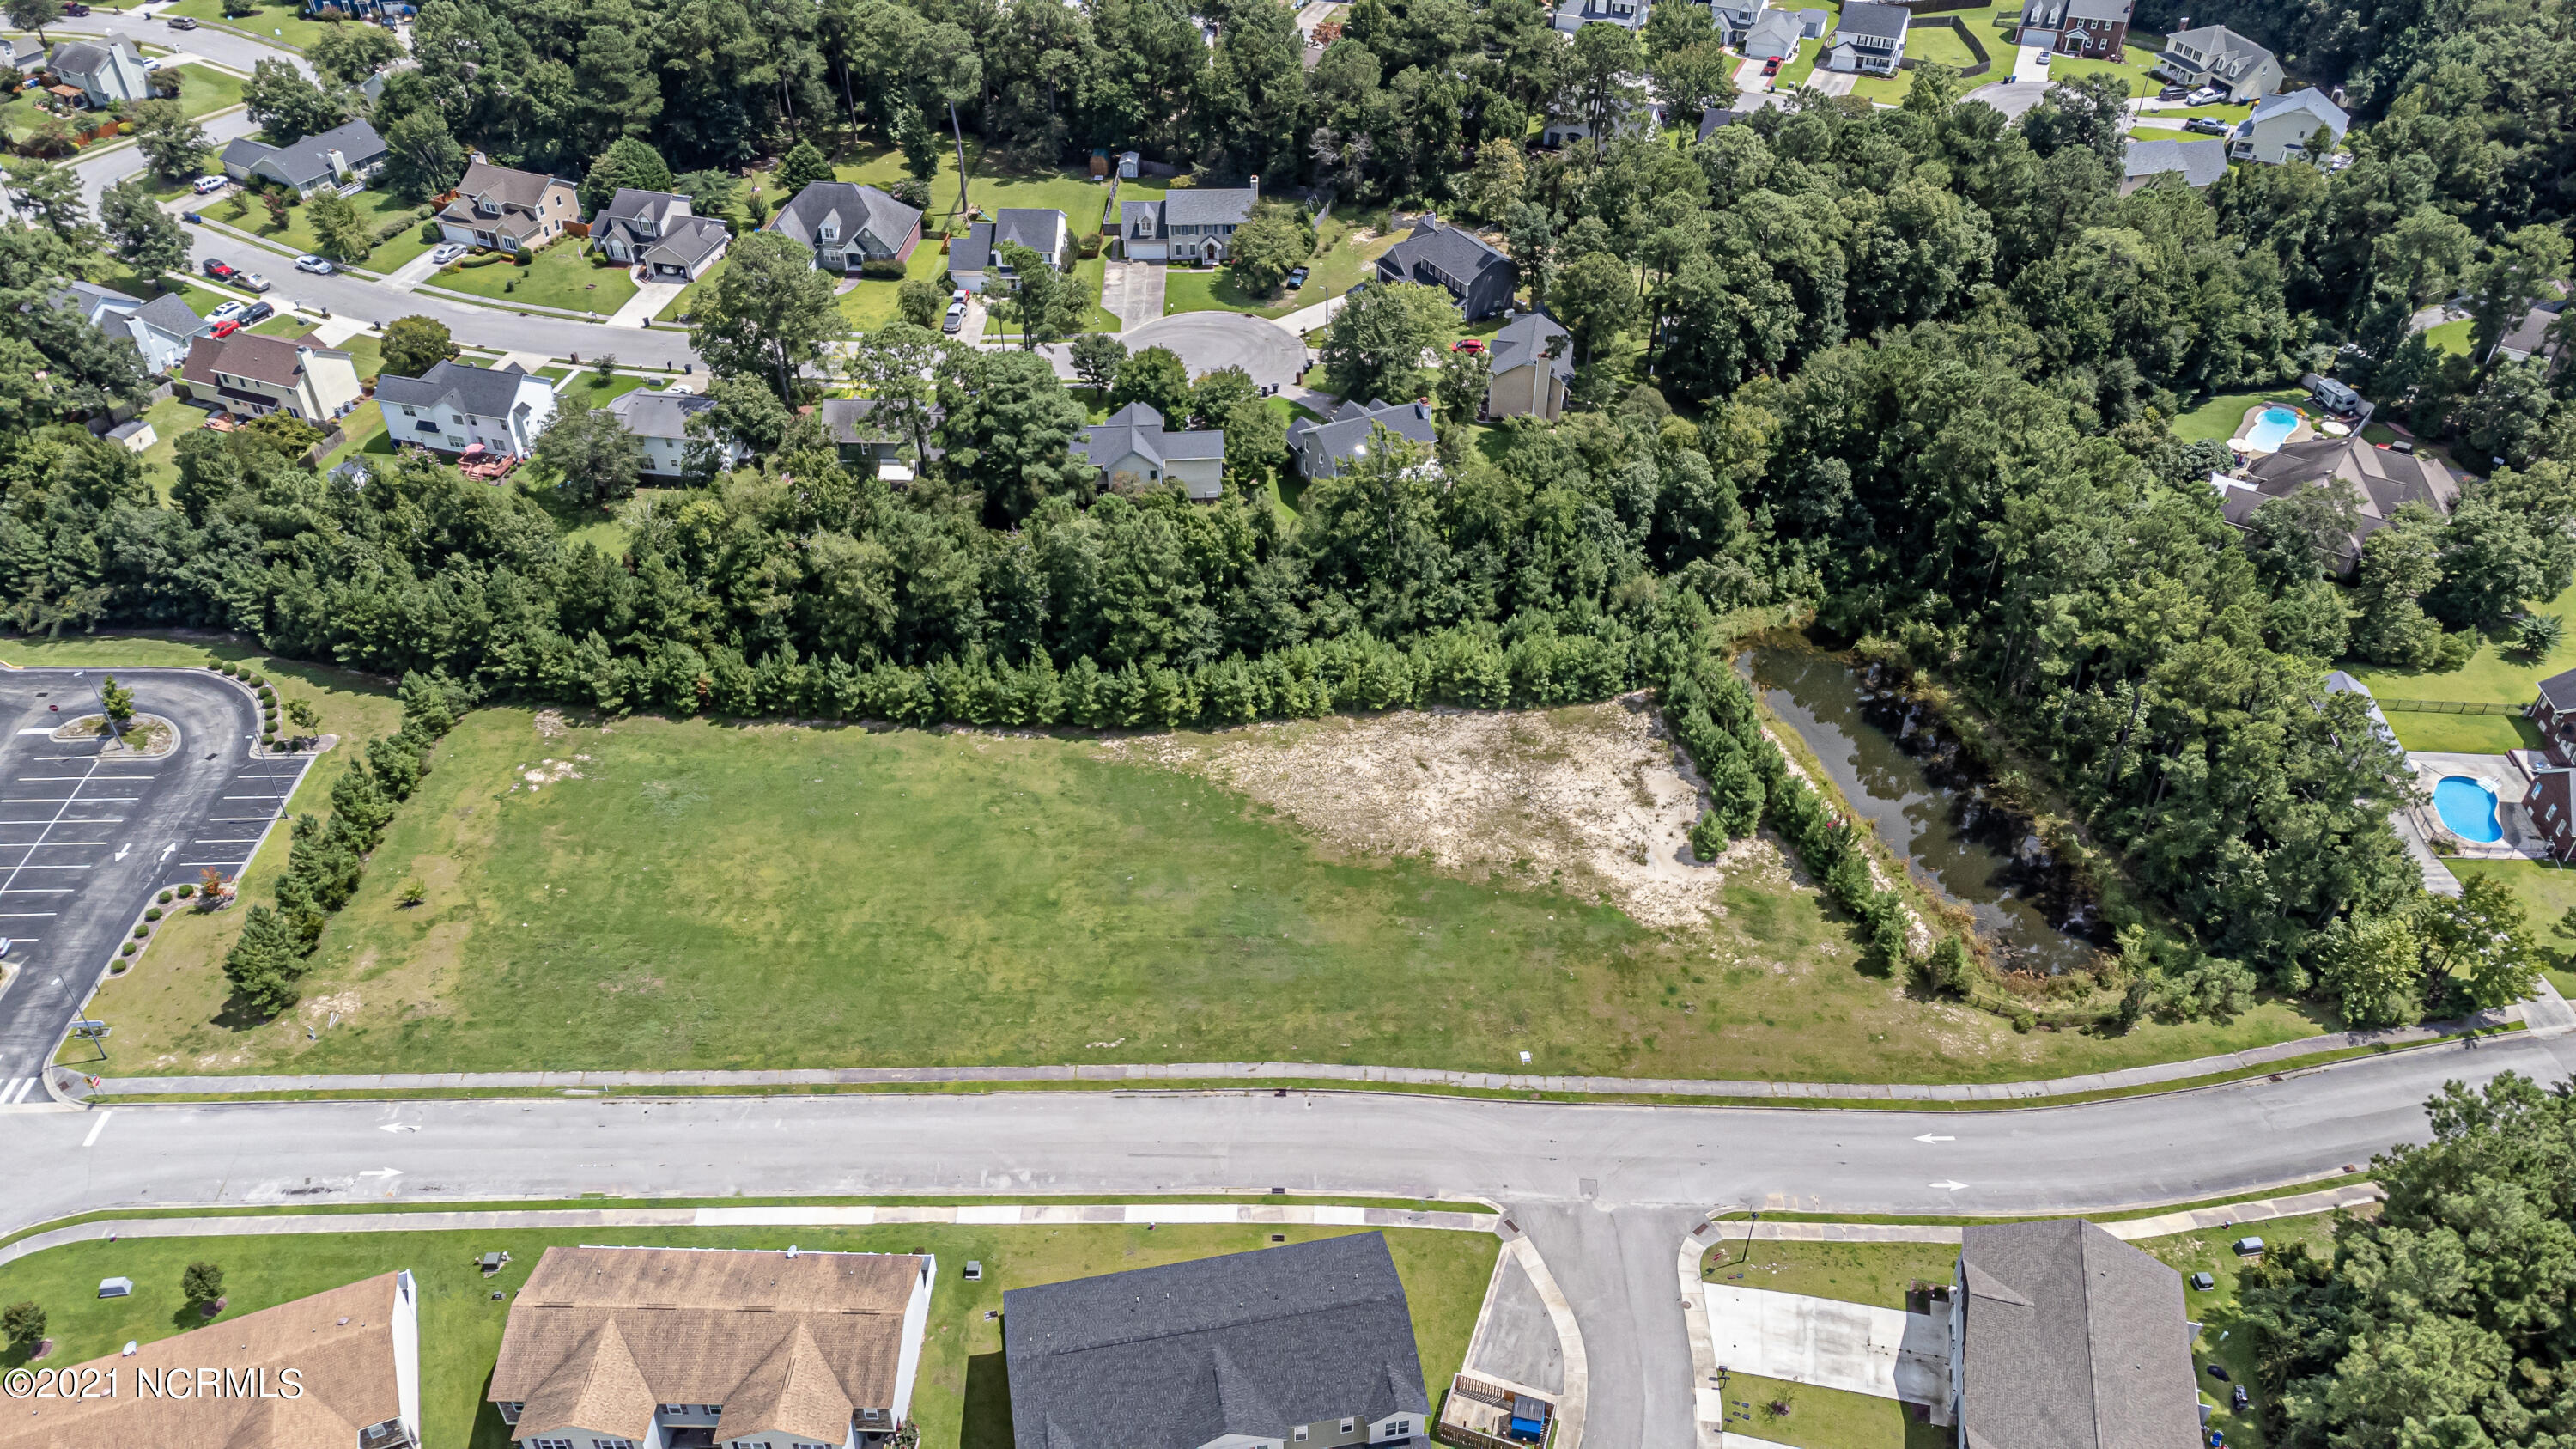 2.47 acres for development. 2 acres land / .47 is retention pond. Very close proximity to hospital, Doctors Park, and mall. 5 minutes from Camp Lejeune.